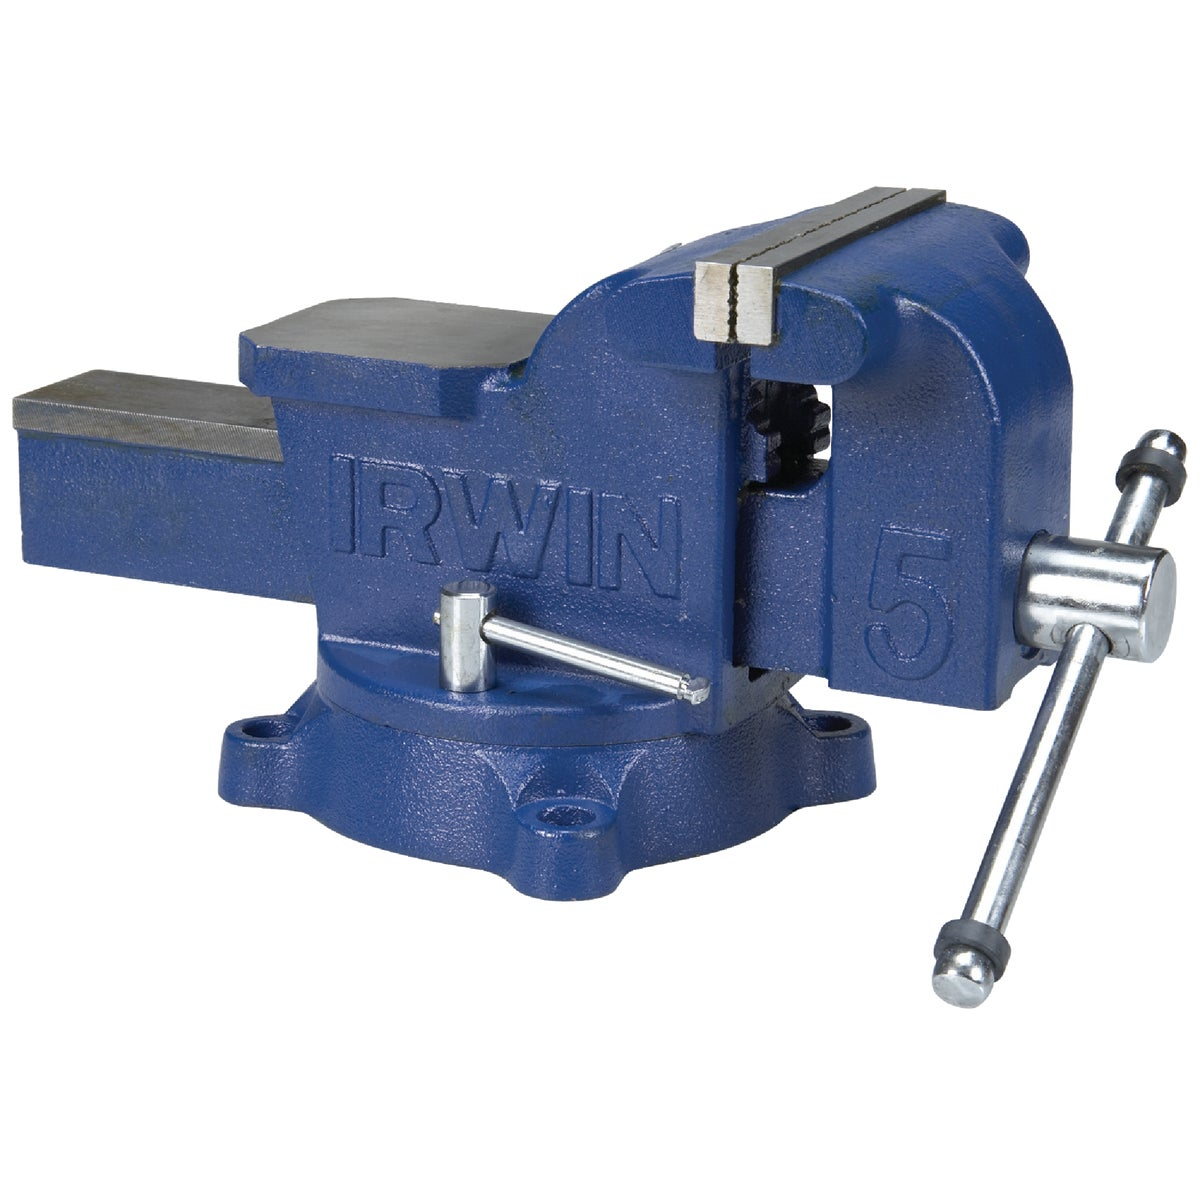 "5"" WORKSHOP BENCH VISE - 226305ZR by Irwin Industr Tool"